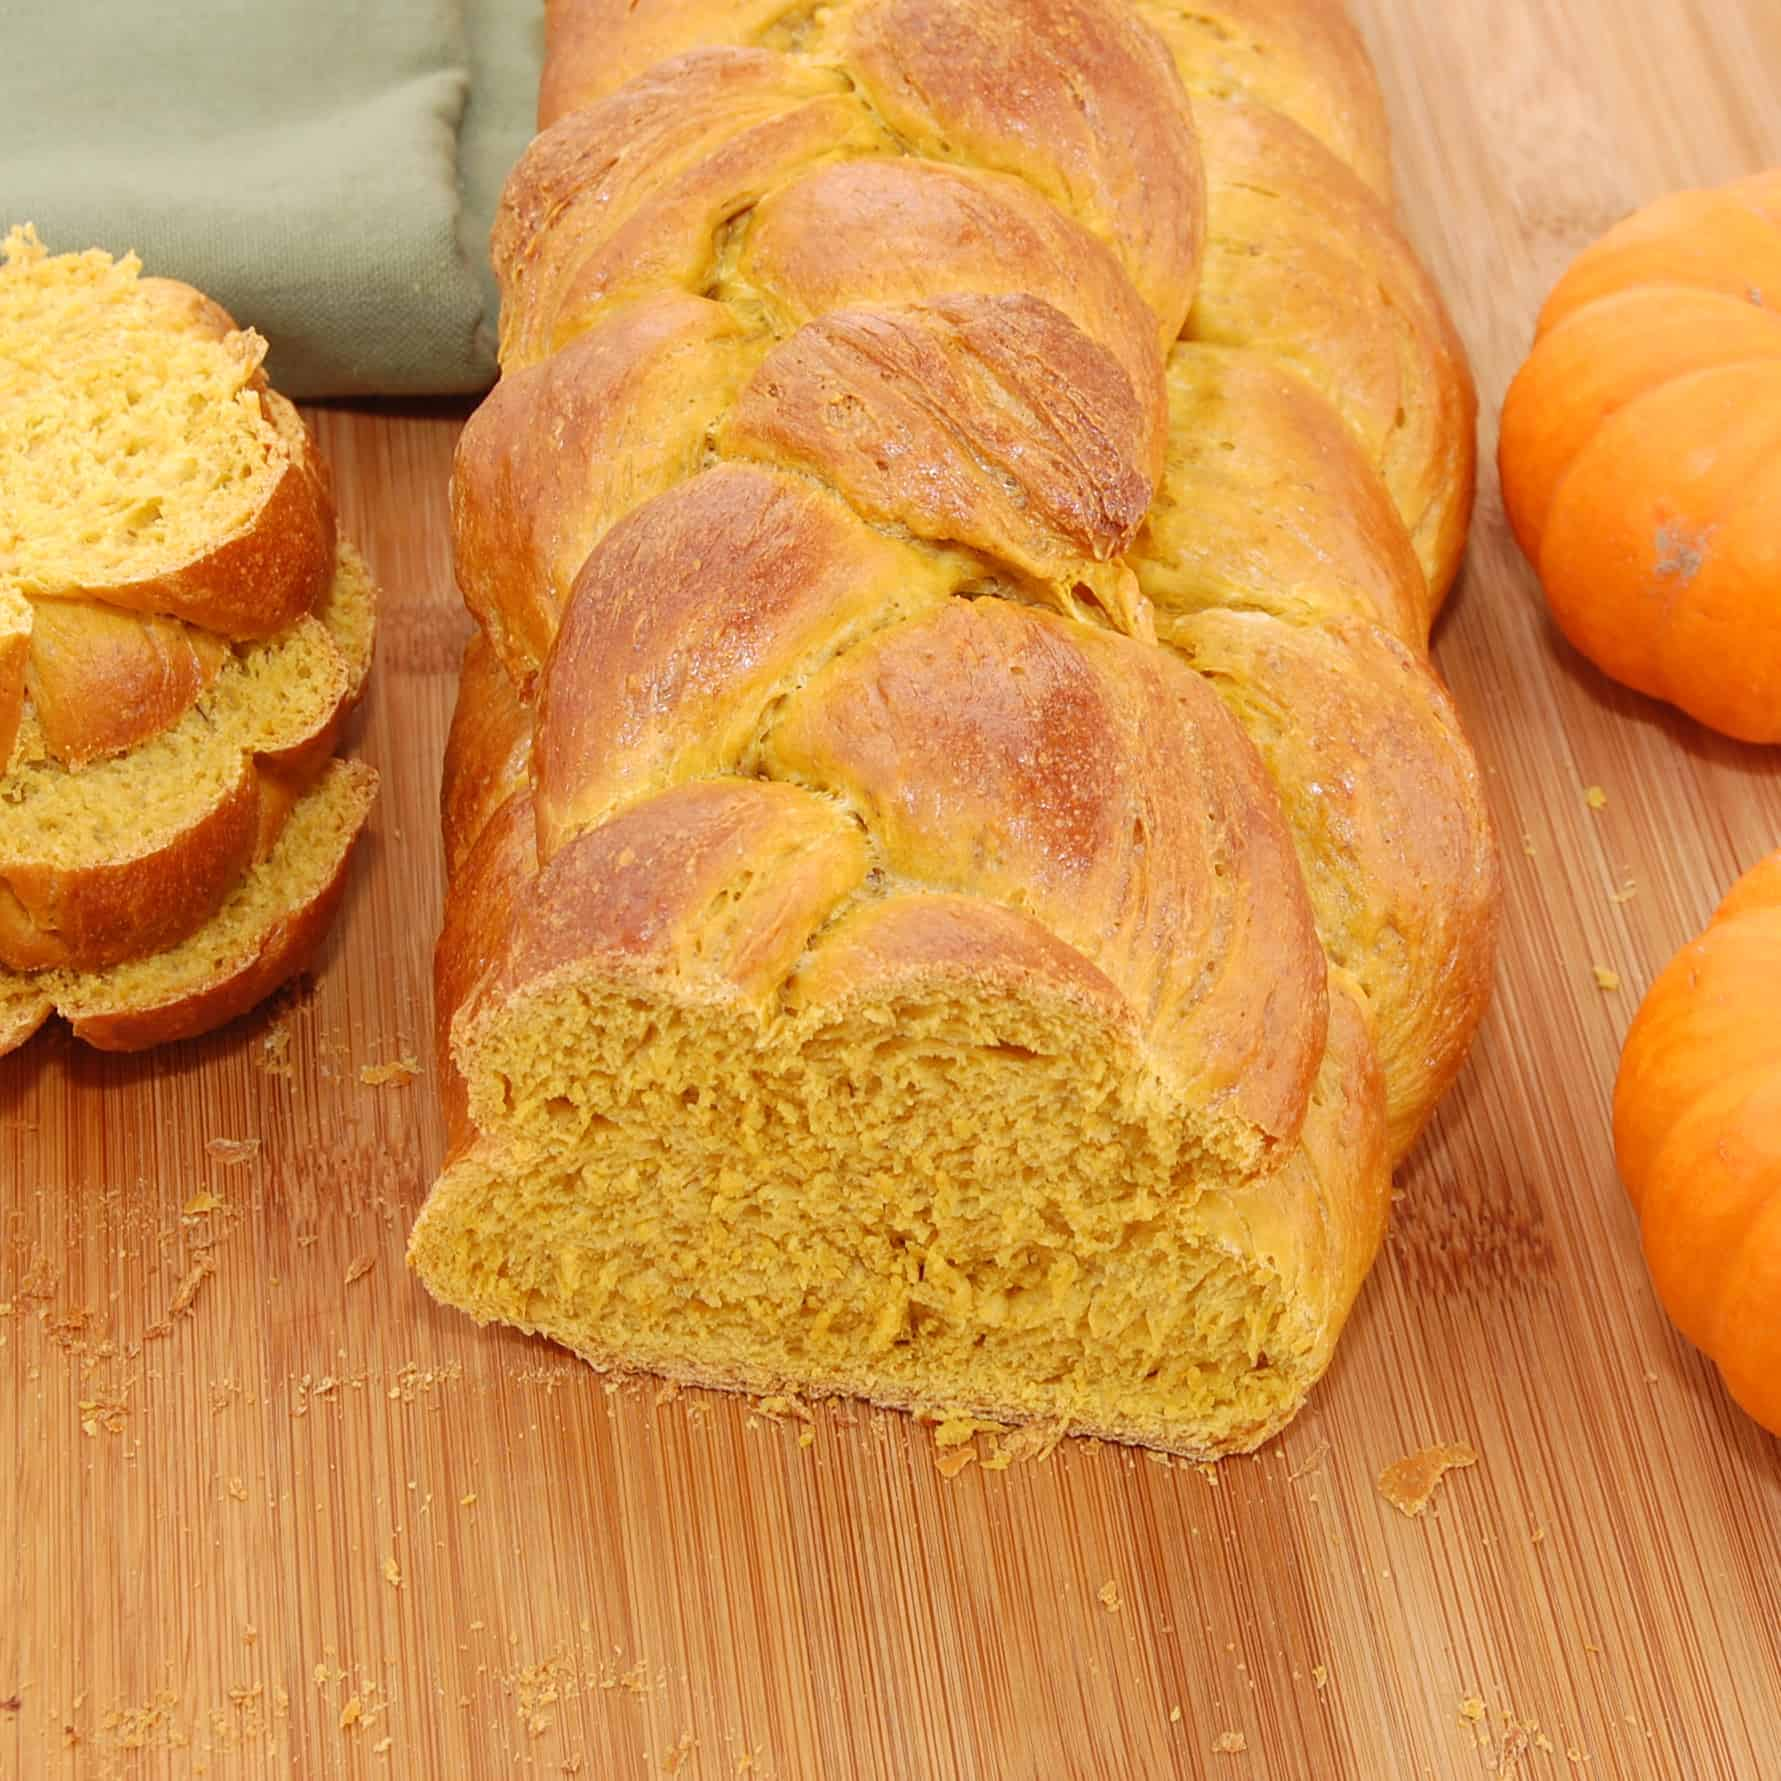 Loaf of pumpkin bread